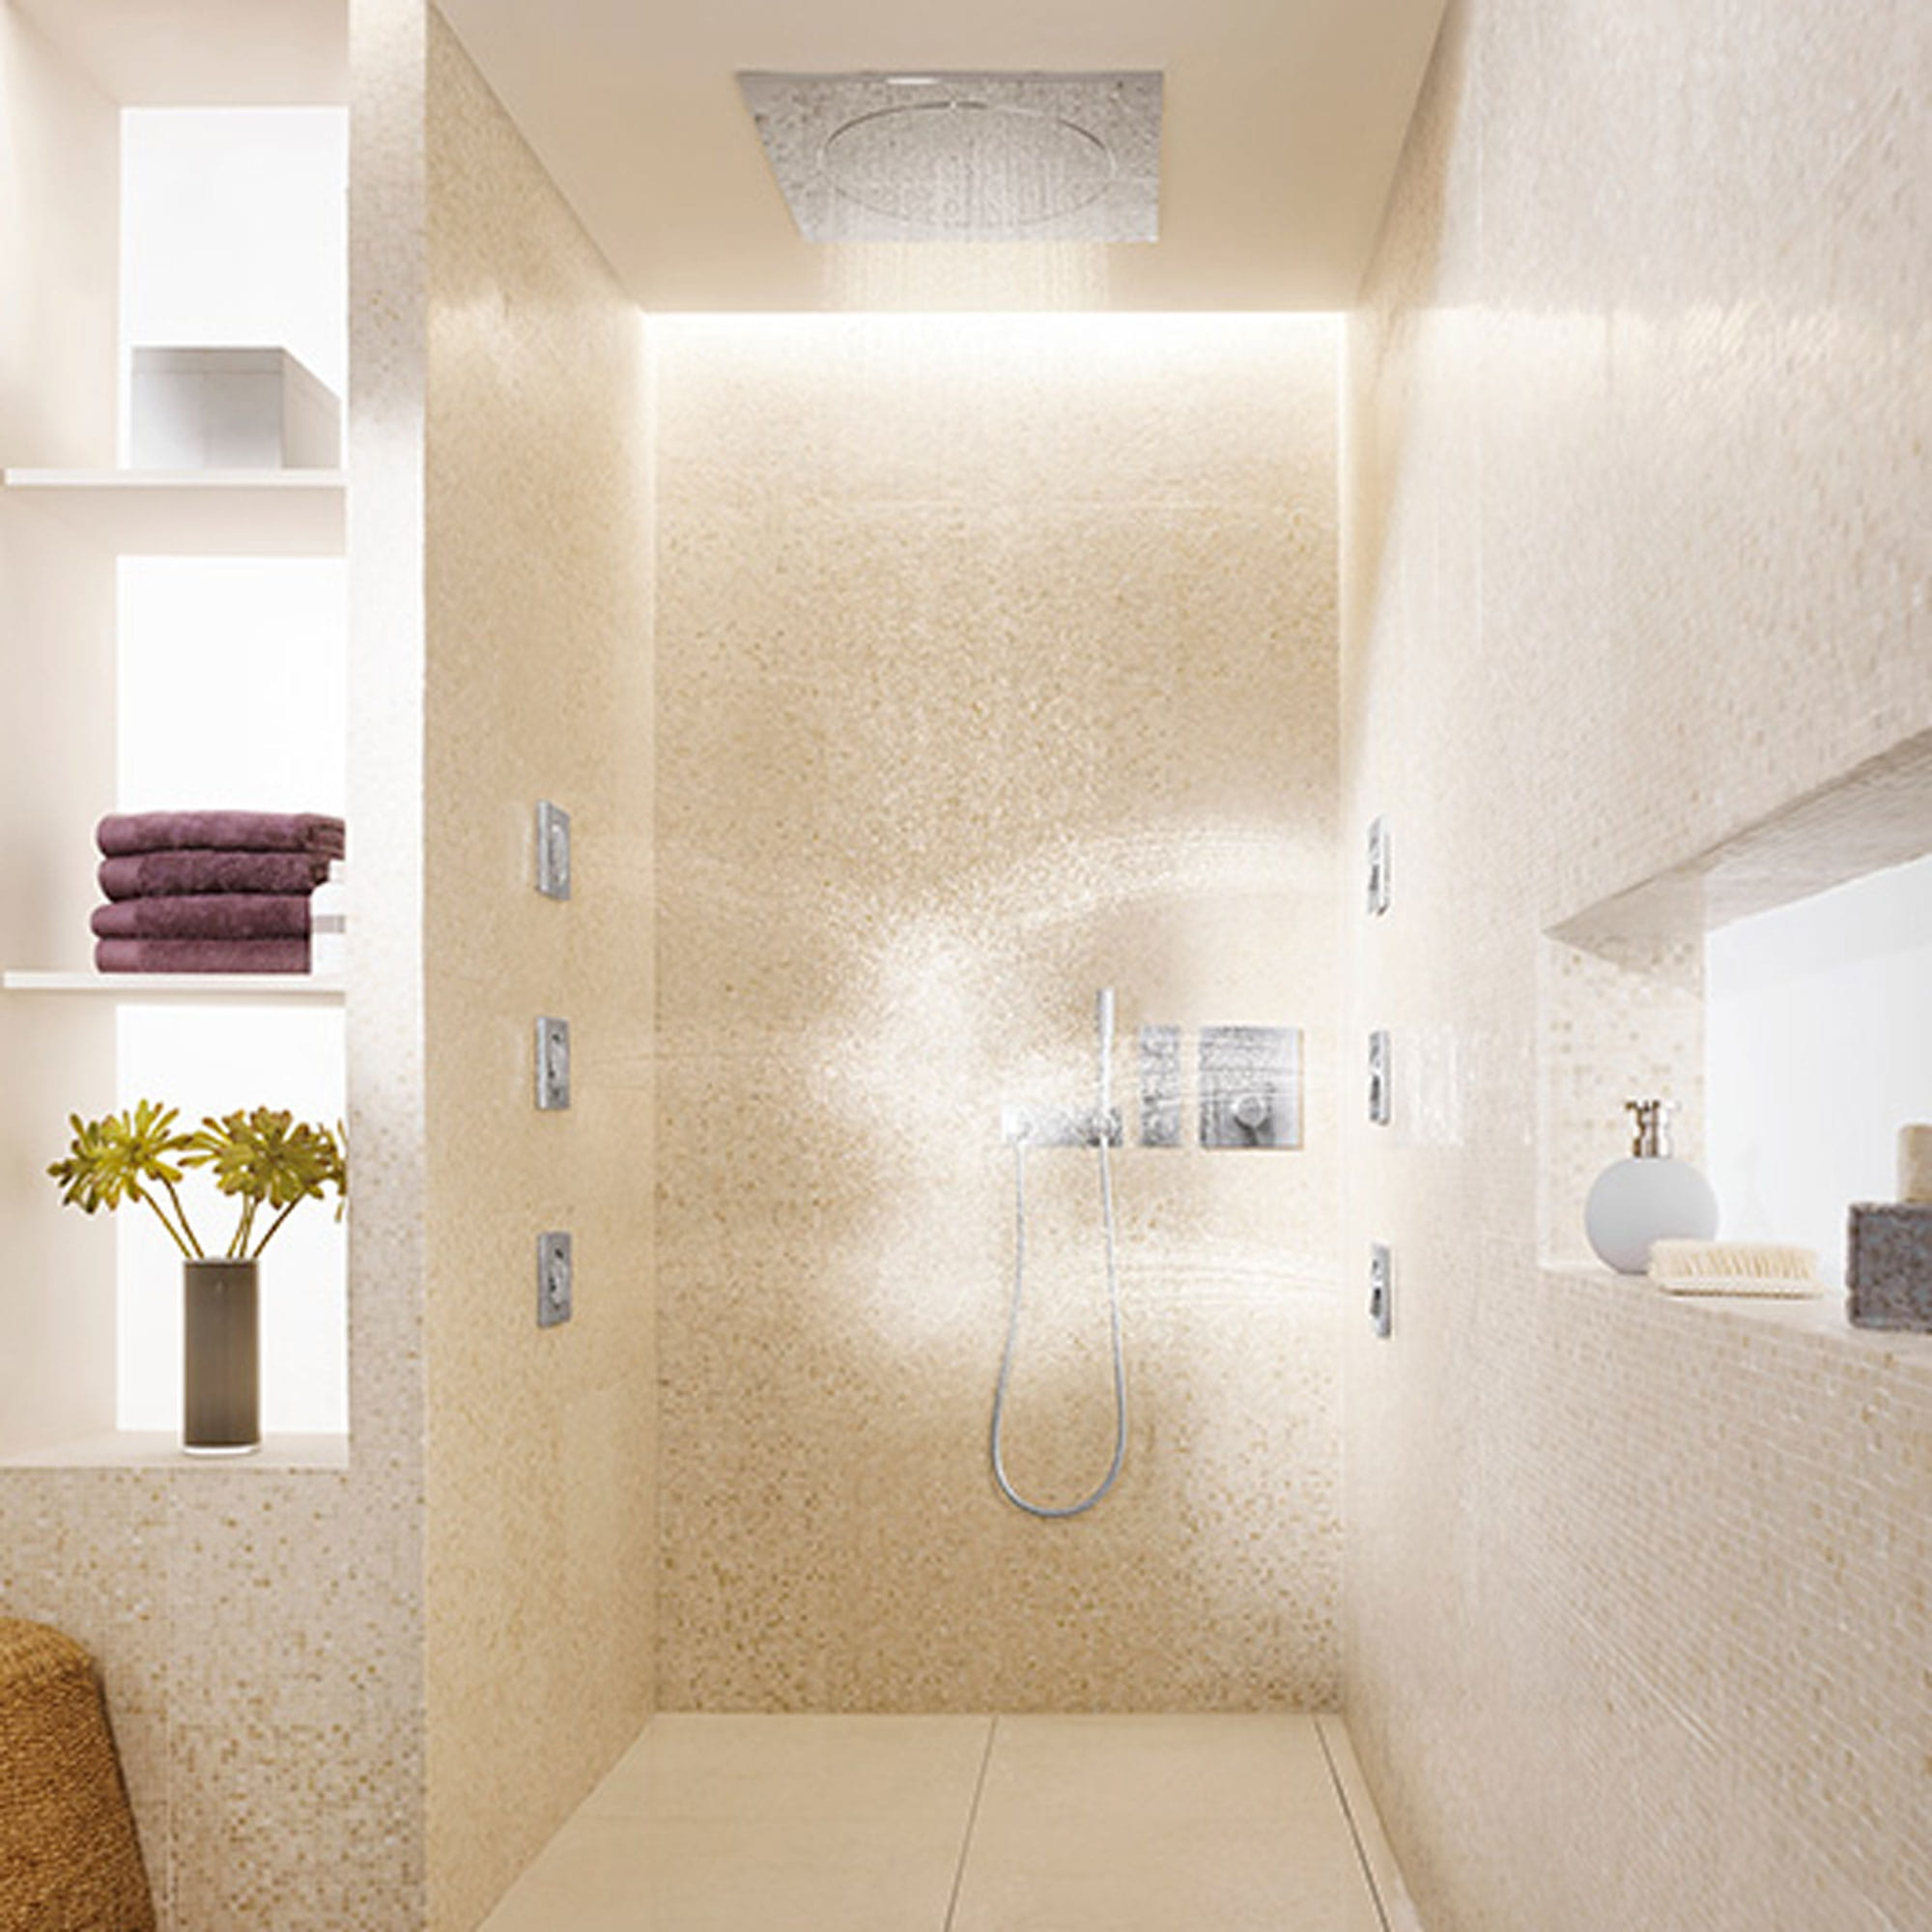 Bathroom shower with wall spray jets and rain showerhead